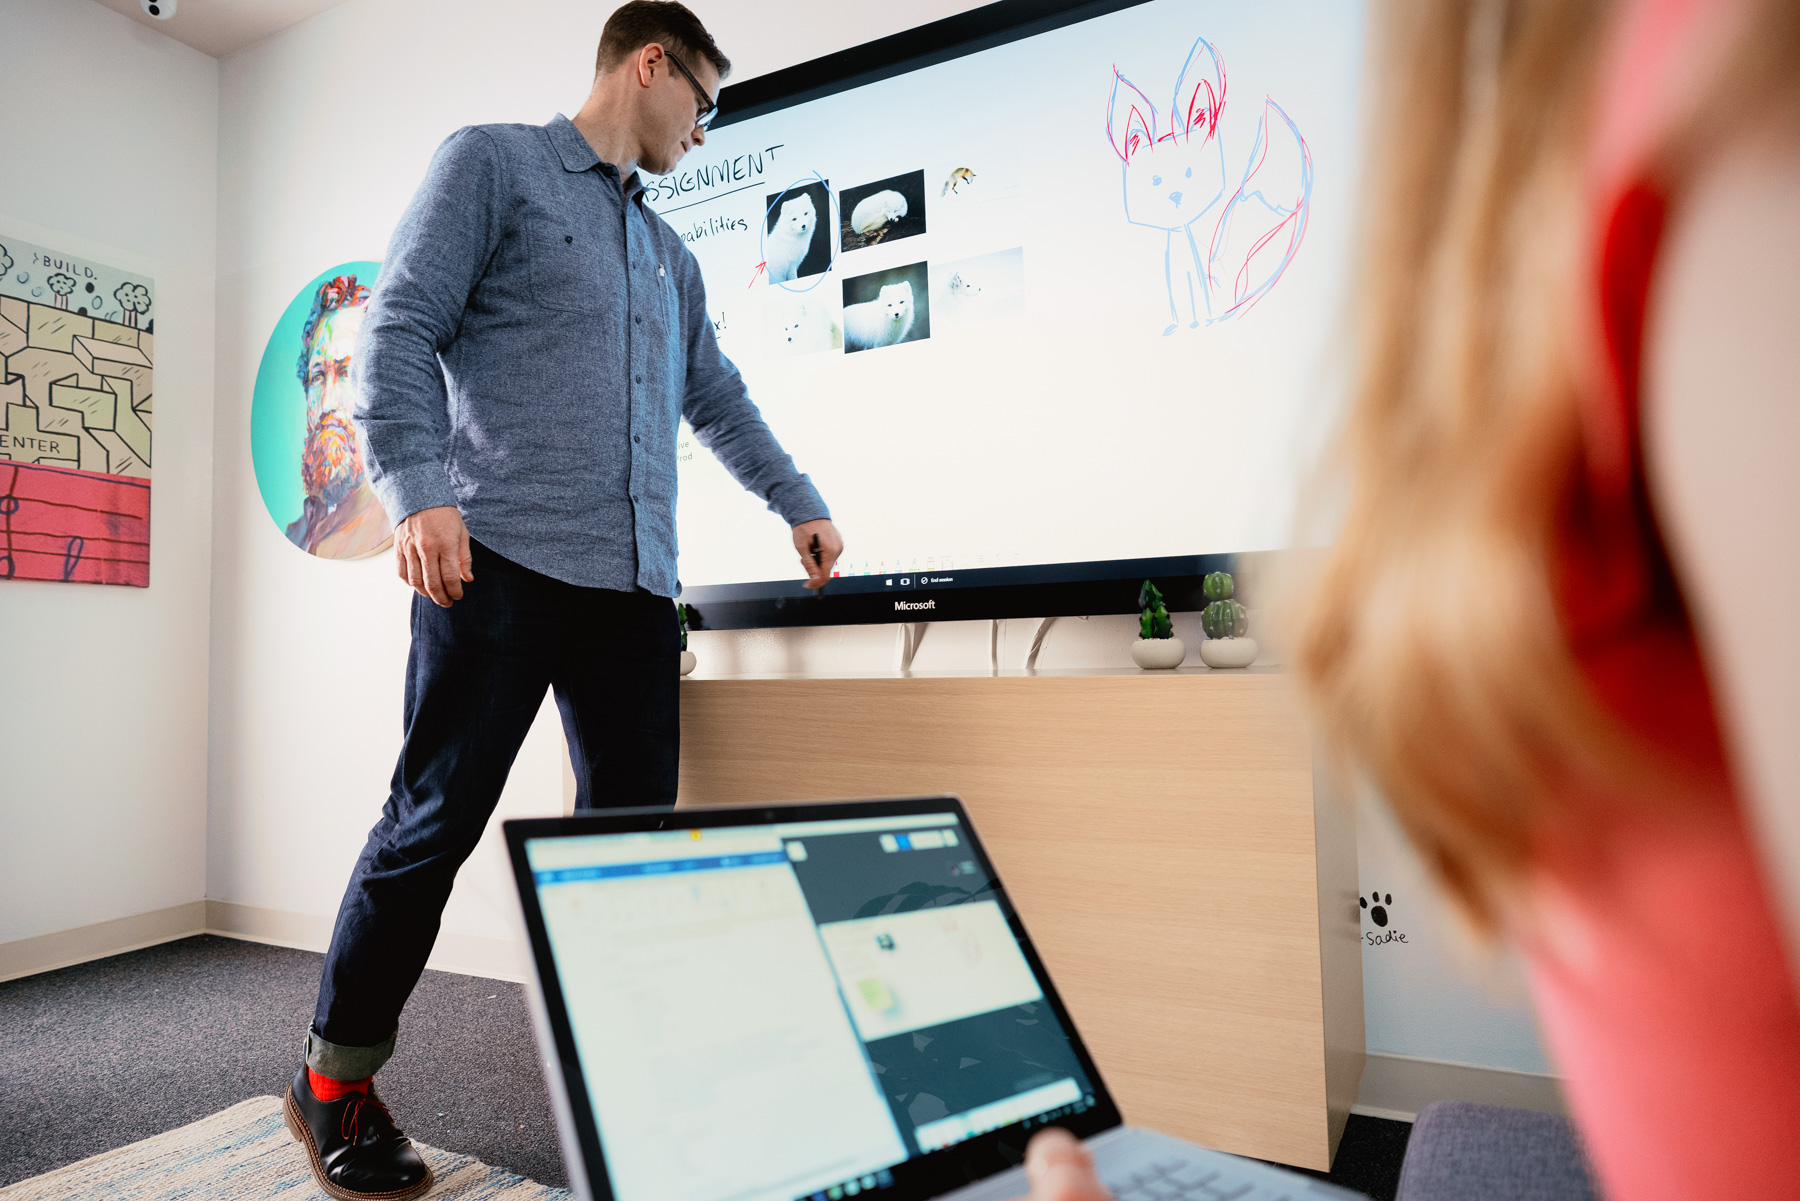 MSFT-WHITEBOARD-ROB-KALMBACH-110-Edit.jpg